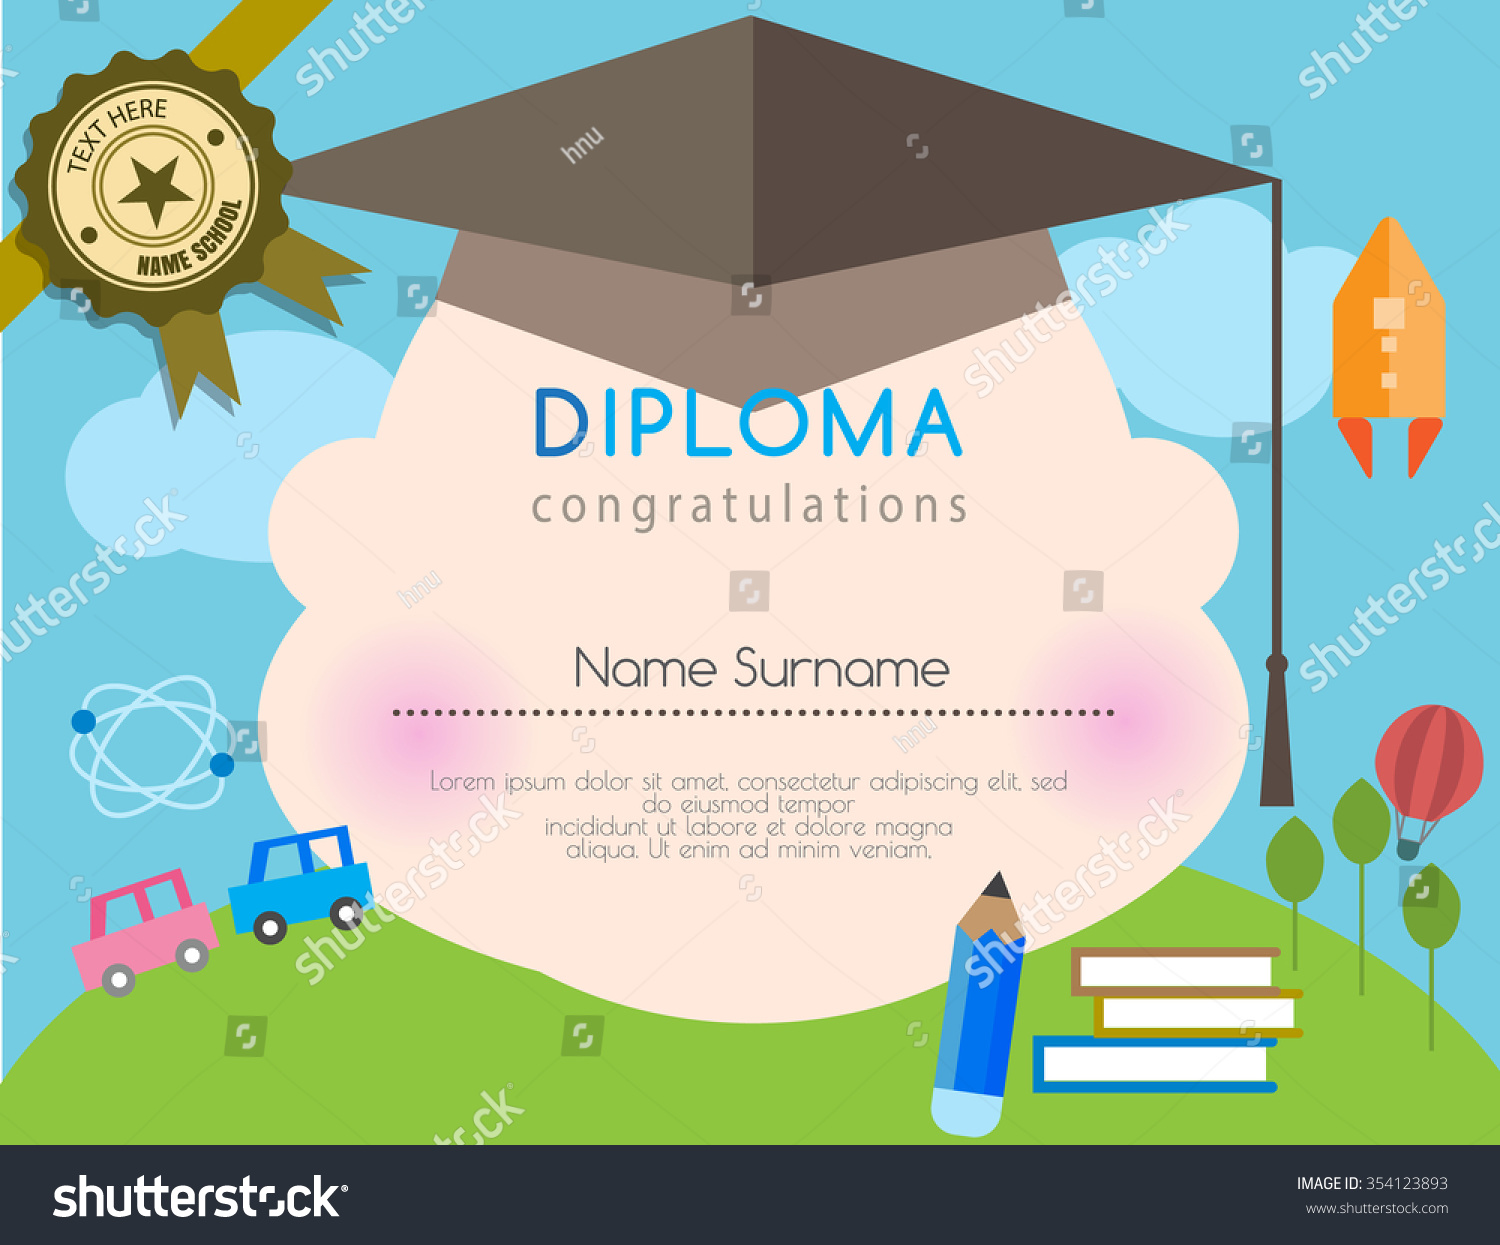 certificate template to edit resume templates certificate template to edit gift certificate template customizable kids diploma preschool certificate elementary school design